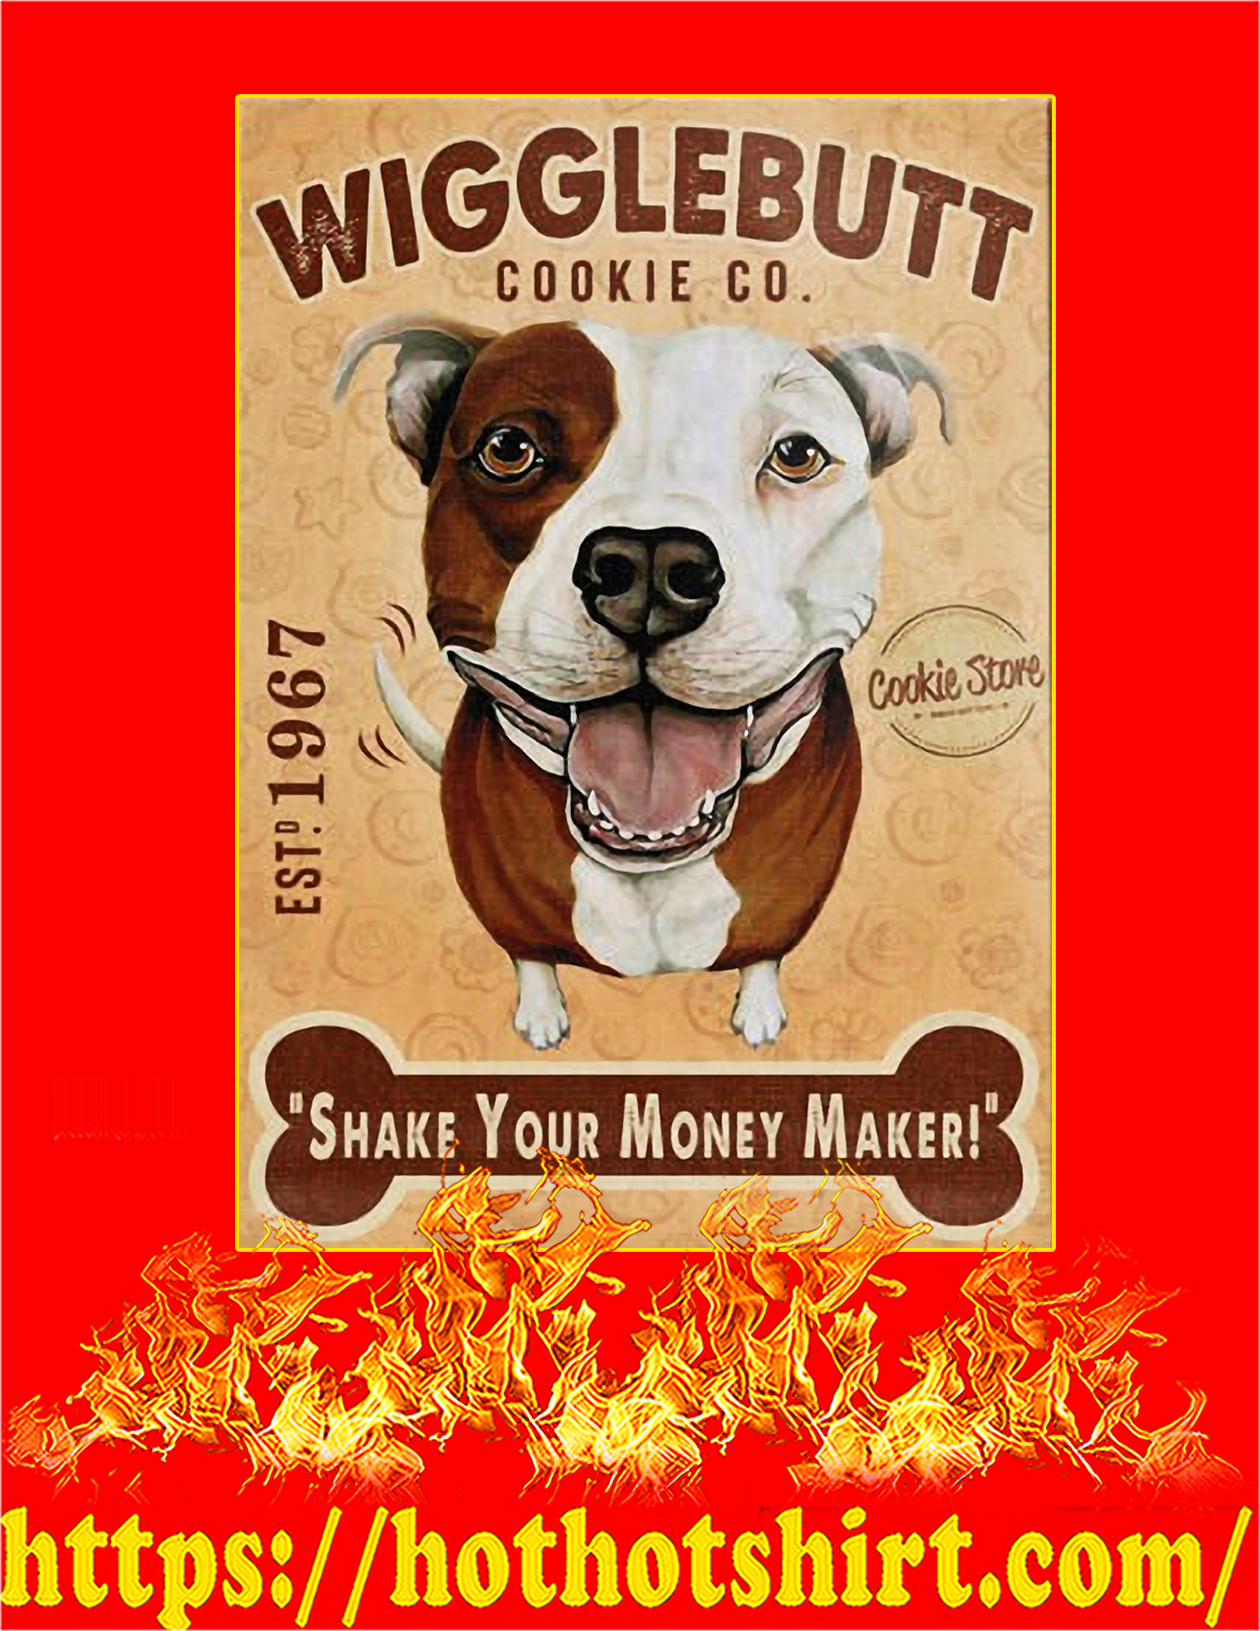 Wigglebutt pit bull dog cookie company poster - A4